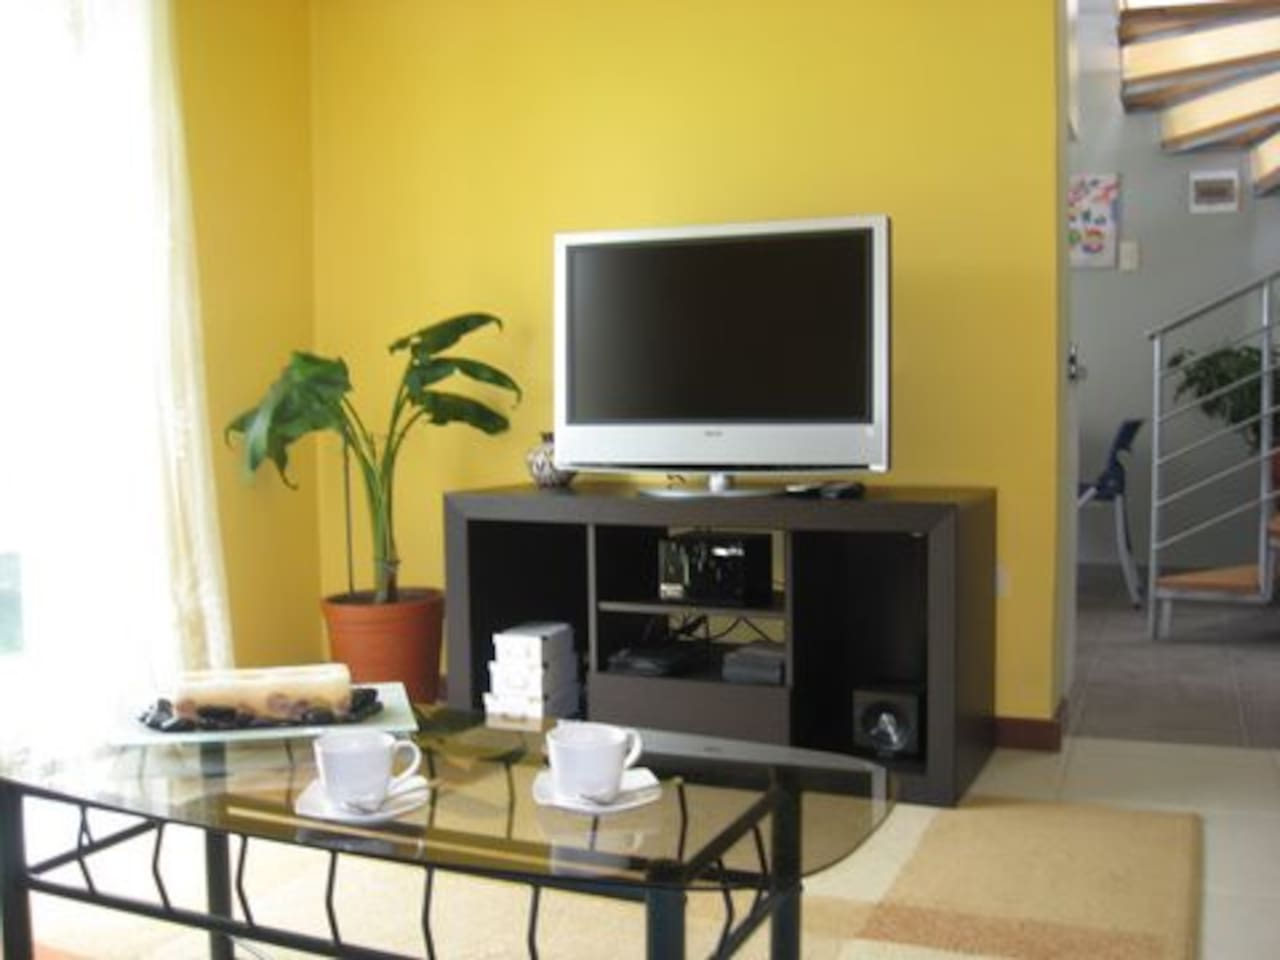 LCD TV in the living room